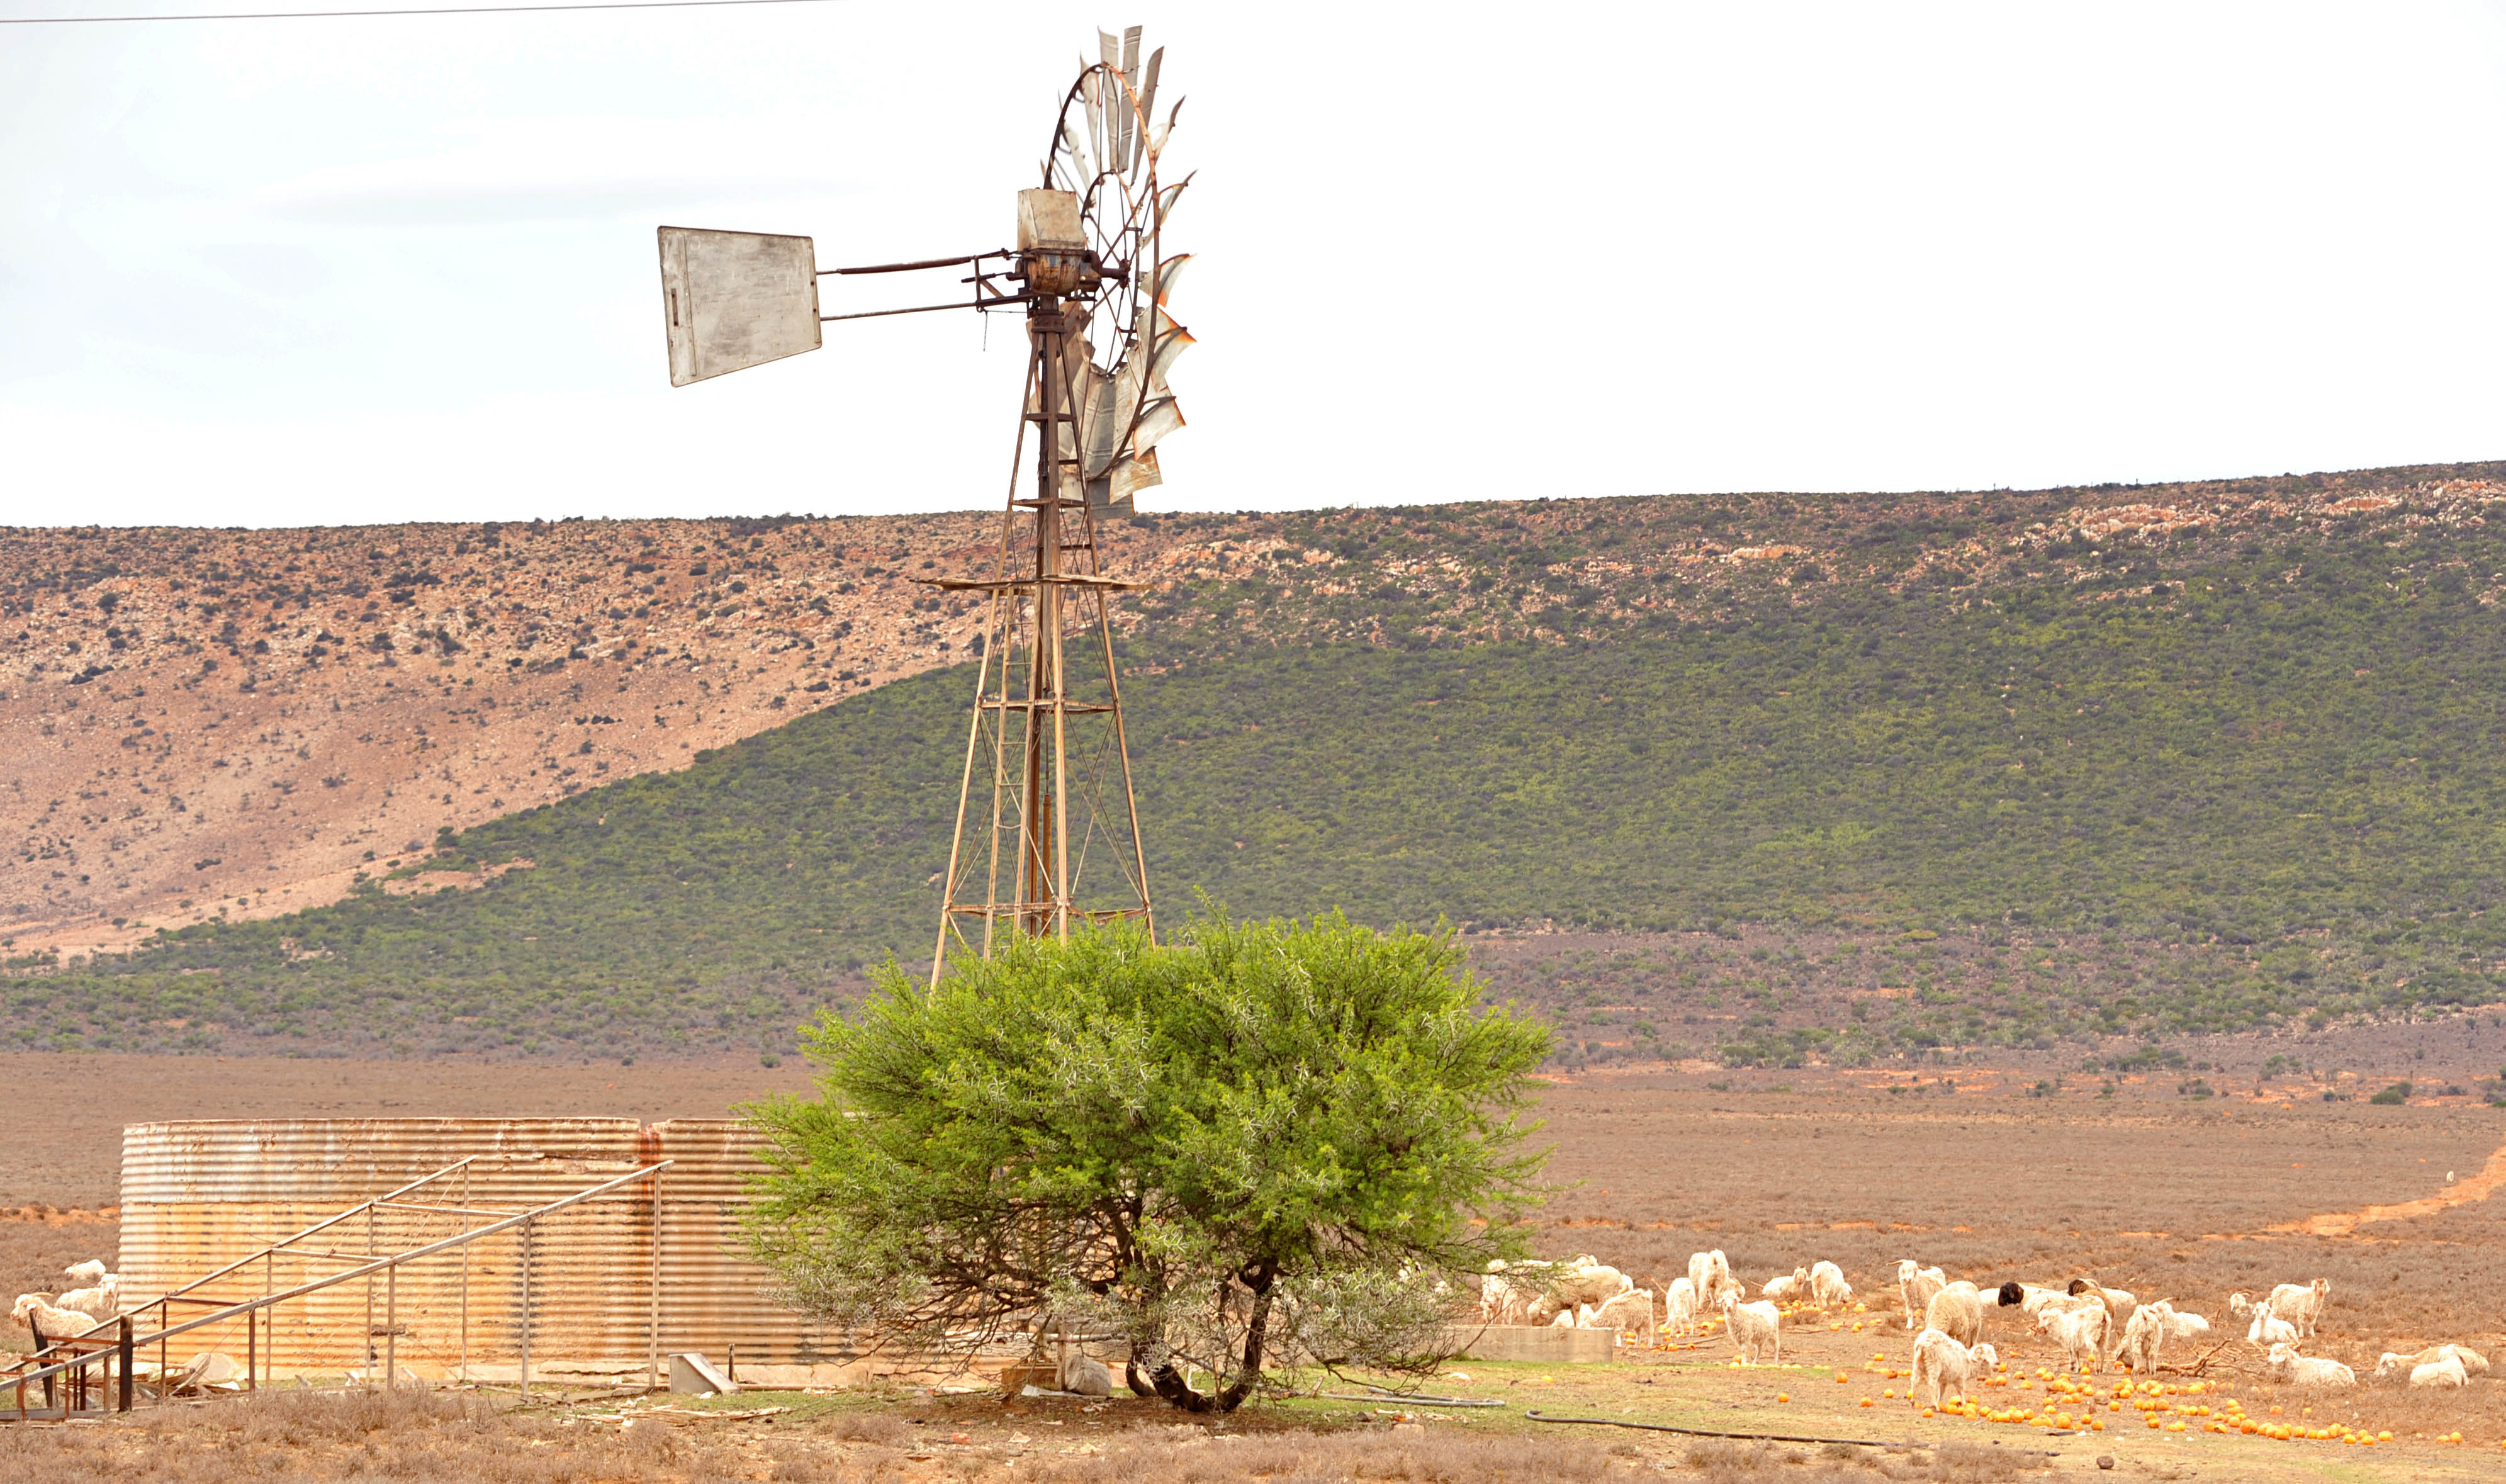 Parched province faces losses of over R6bn